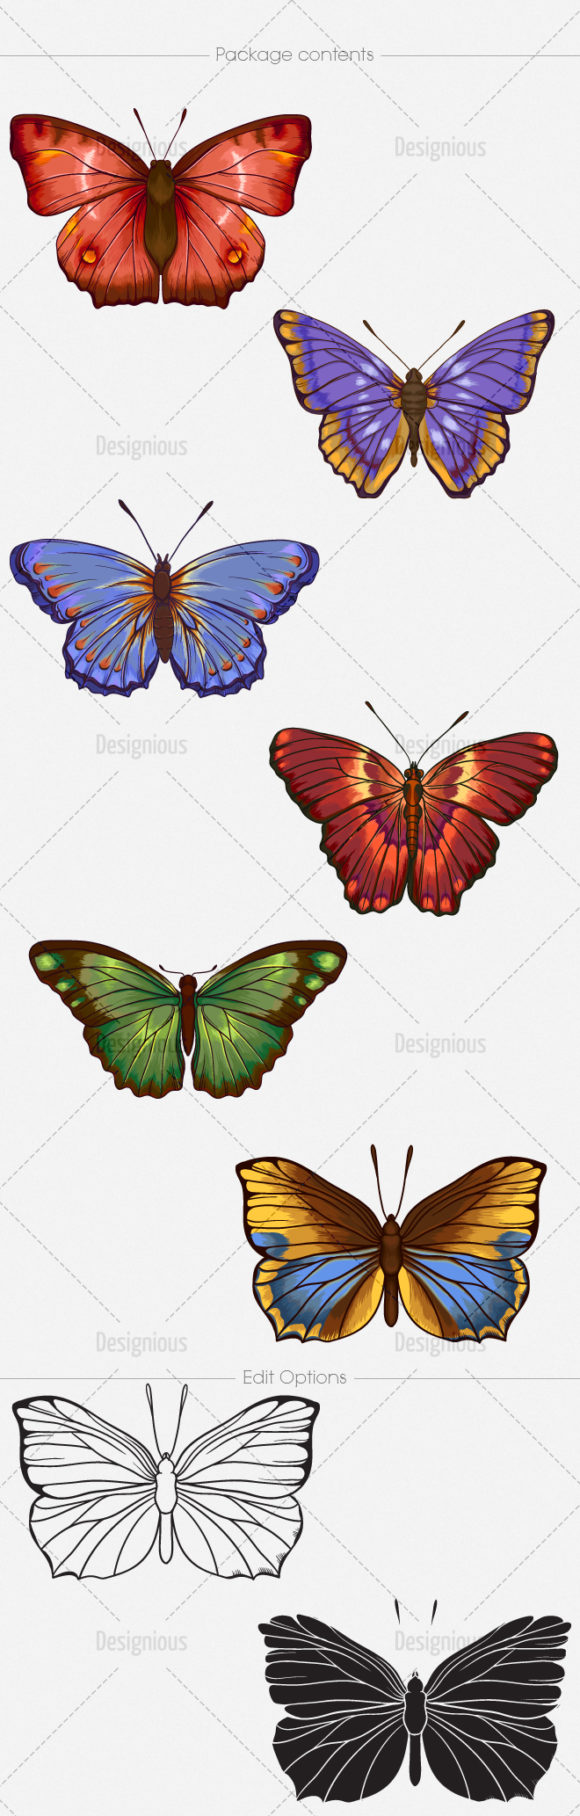 Butterflies Vector Pack 6 products designious vector butterflies 6 large